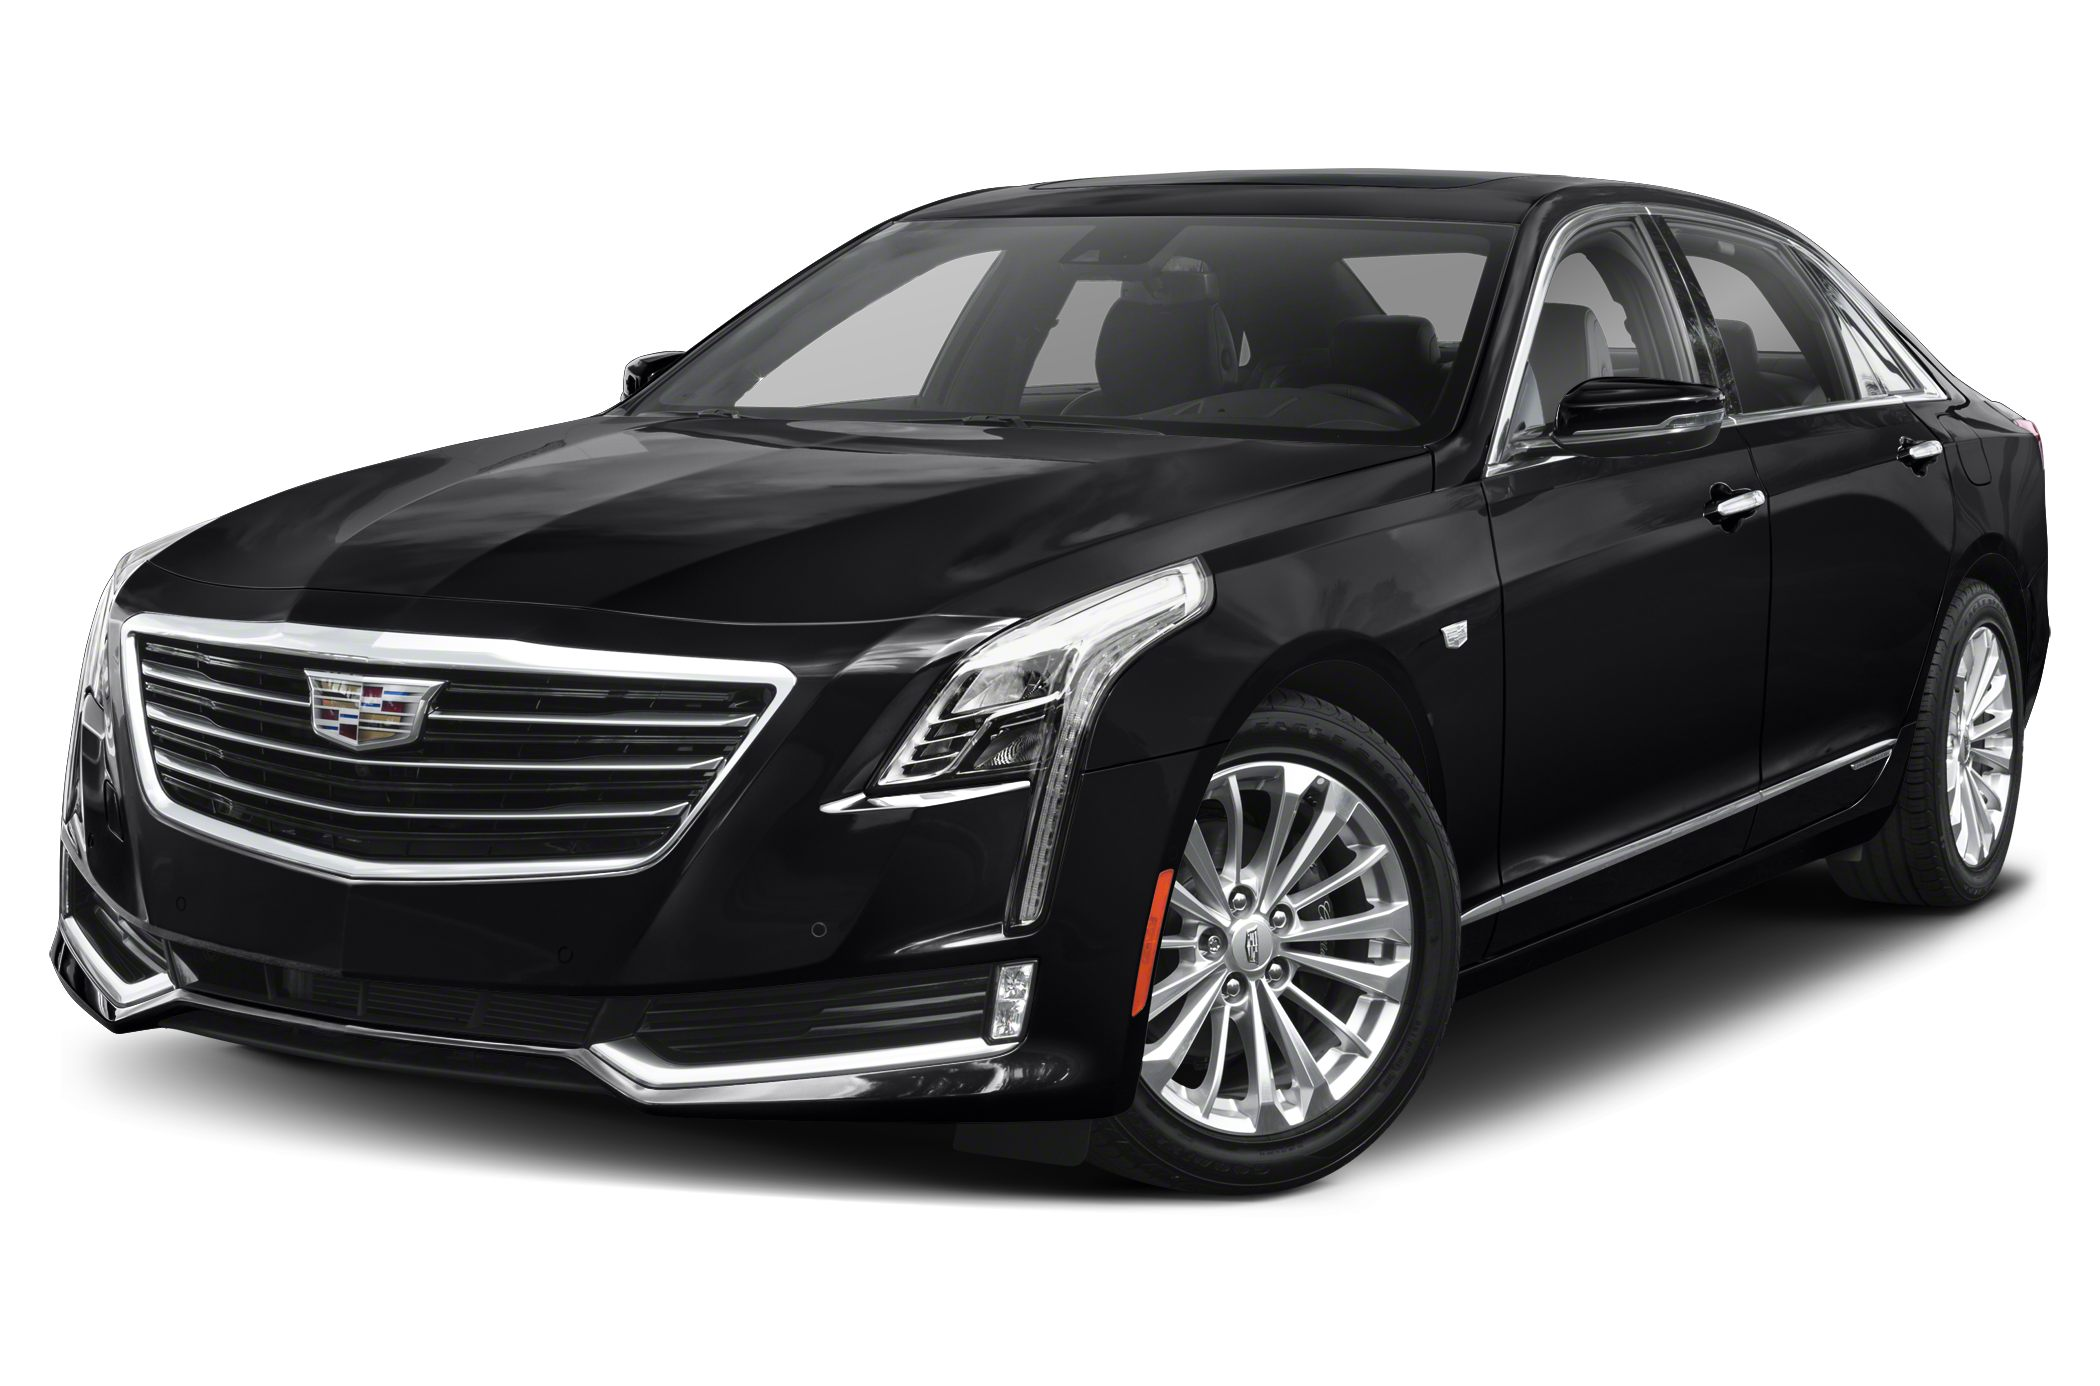 chinese made cadillac ct6 plug in starts us sales autoblog green howldb. Black Bedroom Furniture Sets. Home Design Ideas